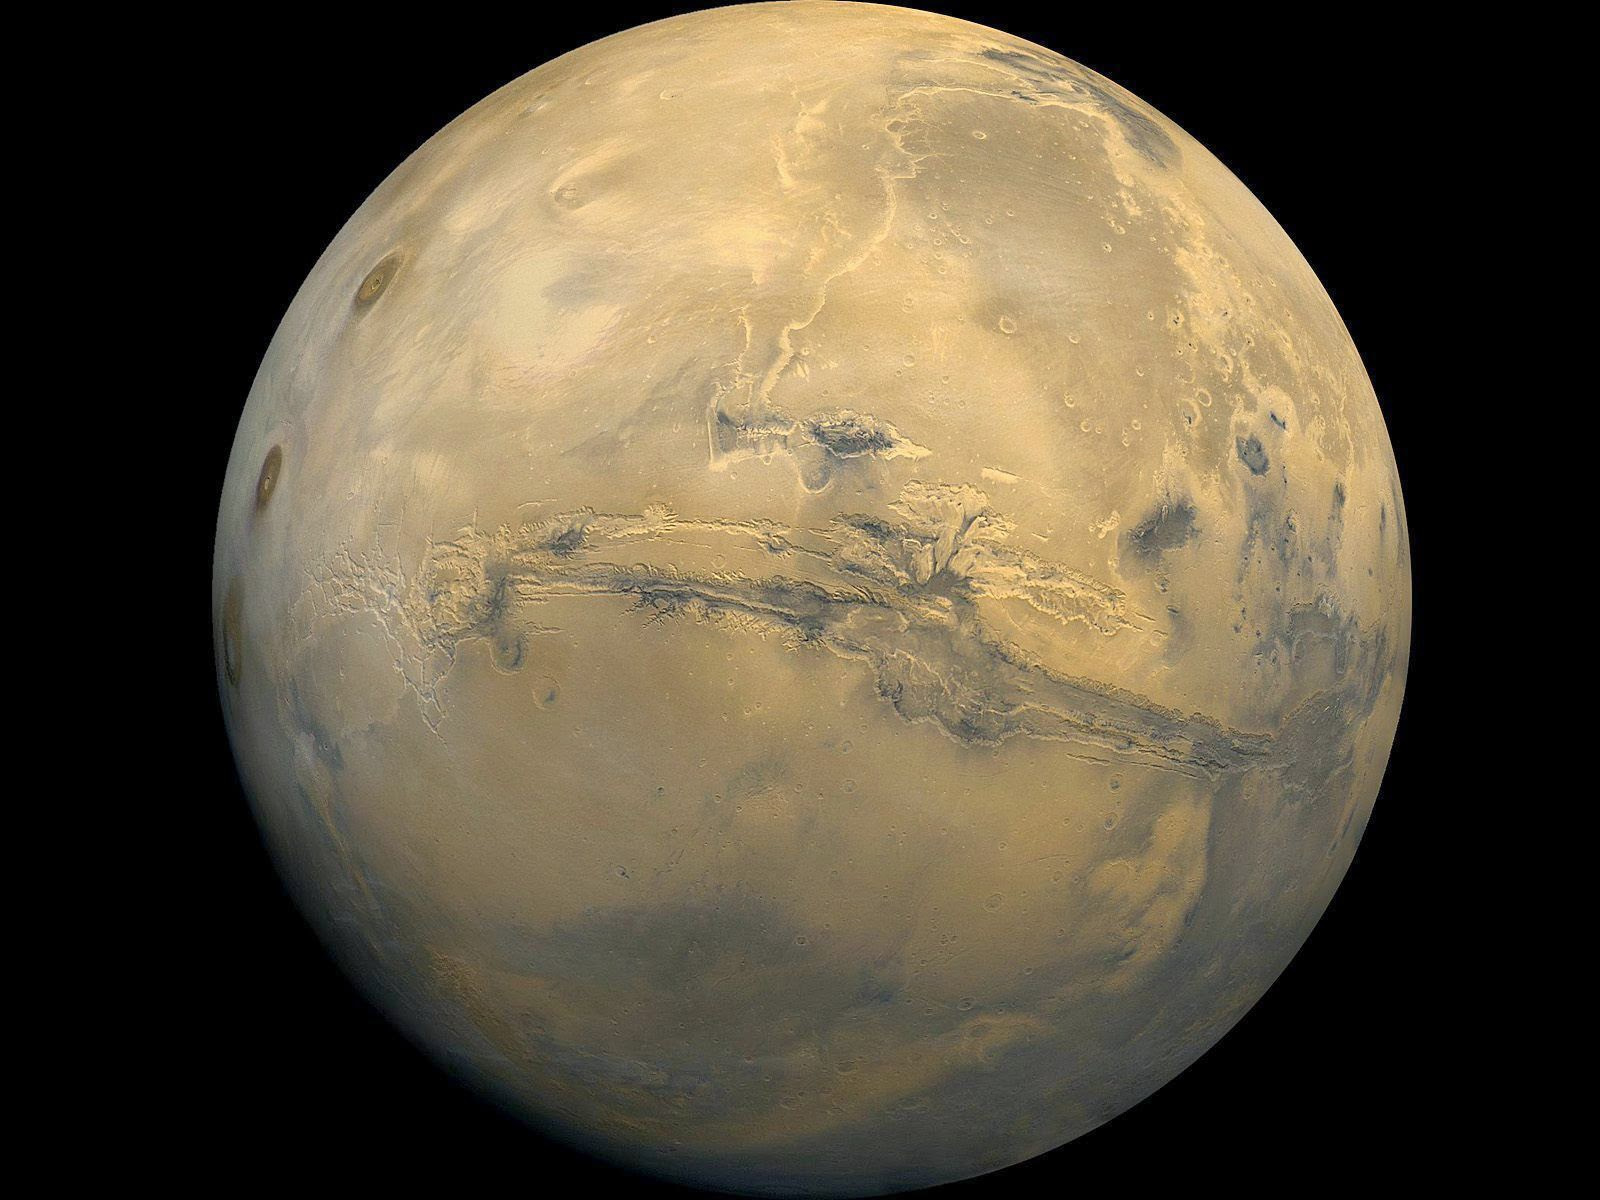 Mars Planet, fact, interesting mars planet news